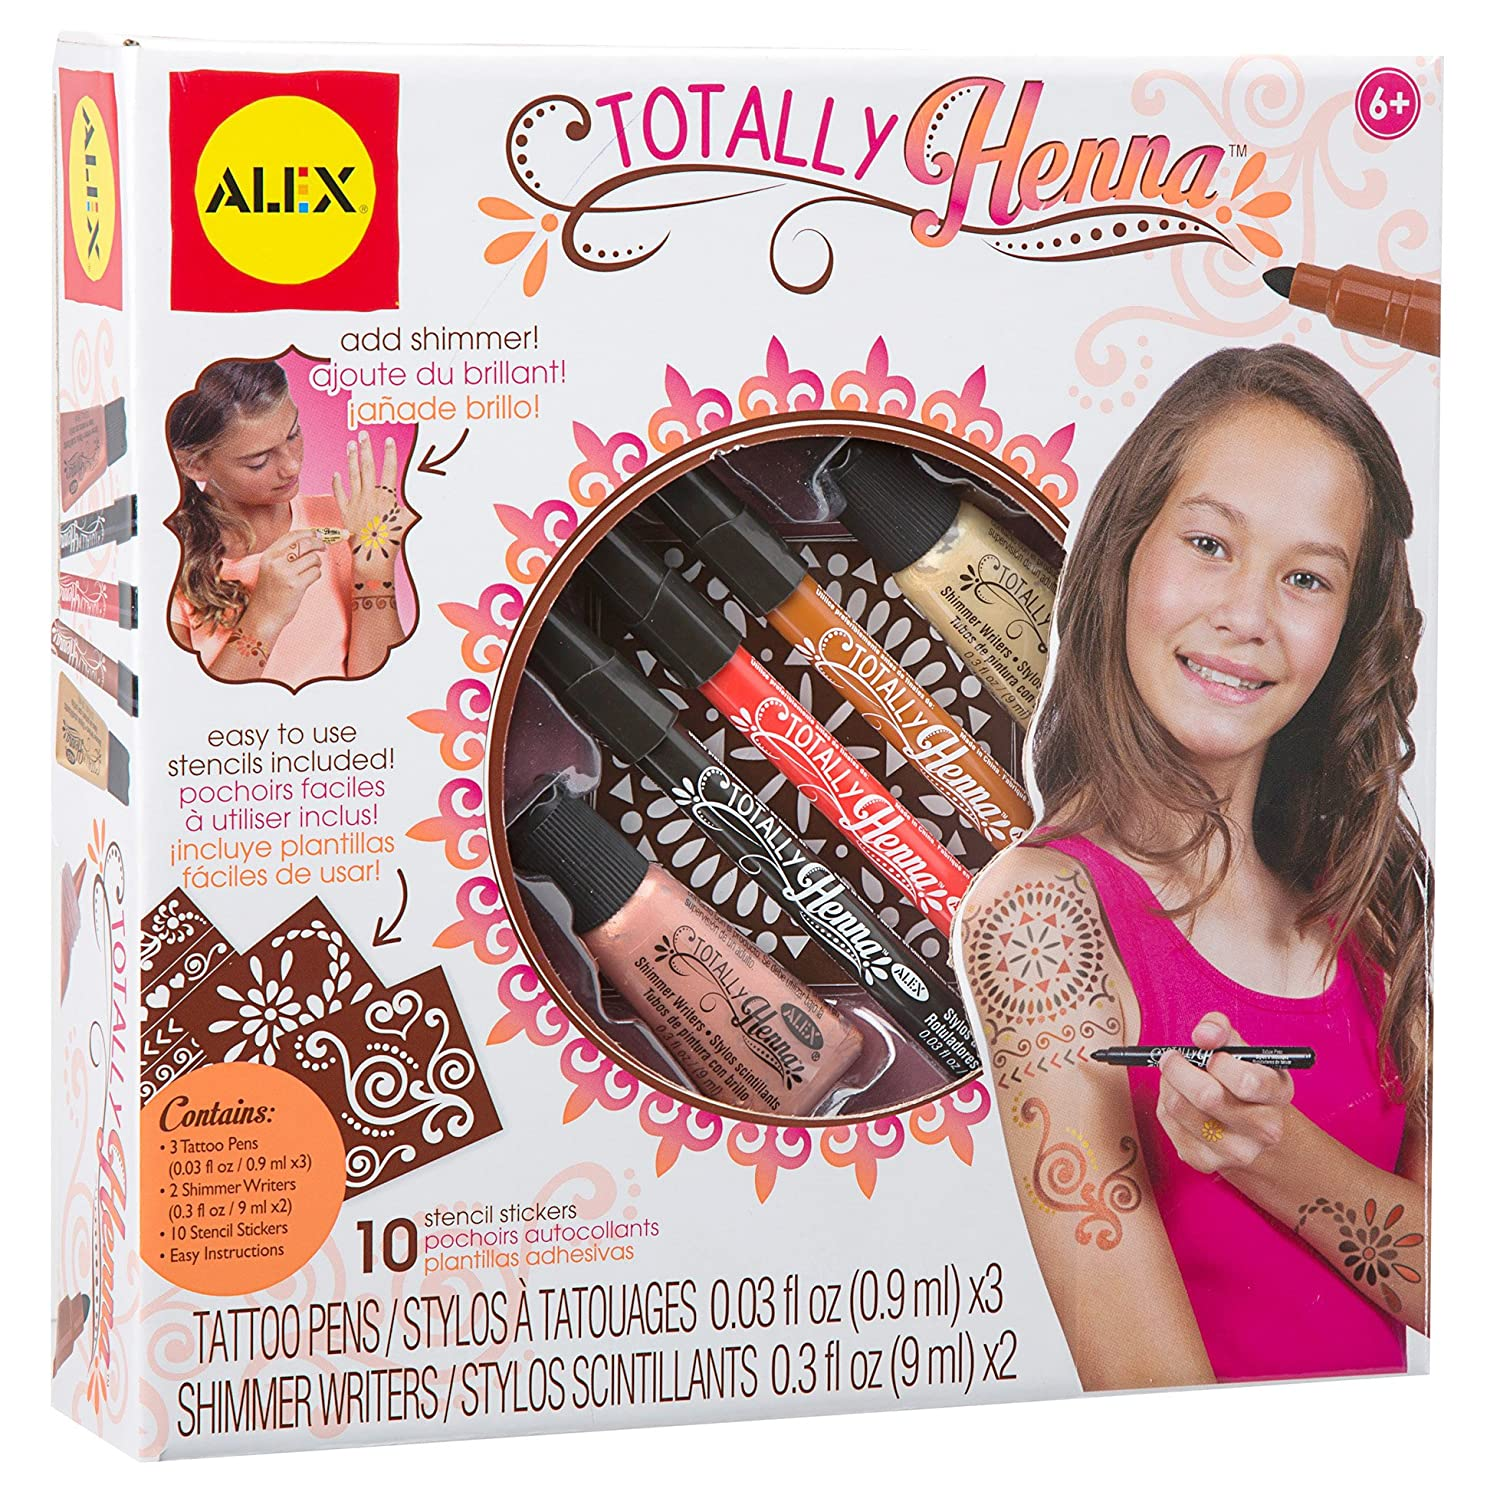 Totally Henna Kit